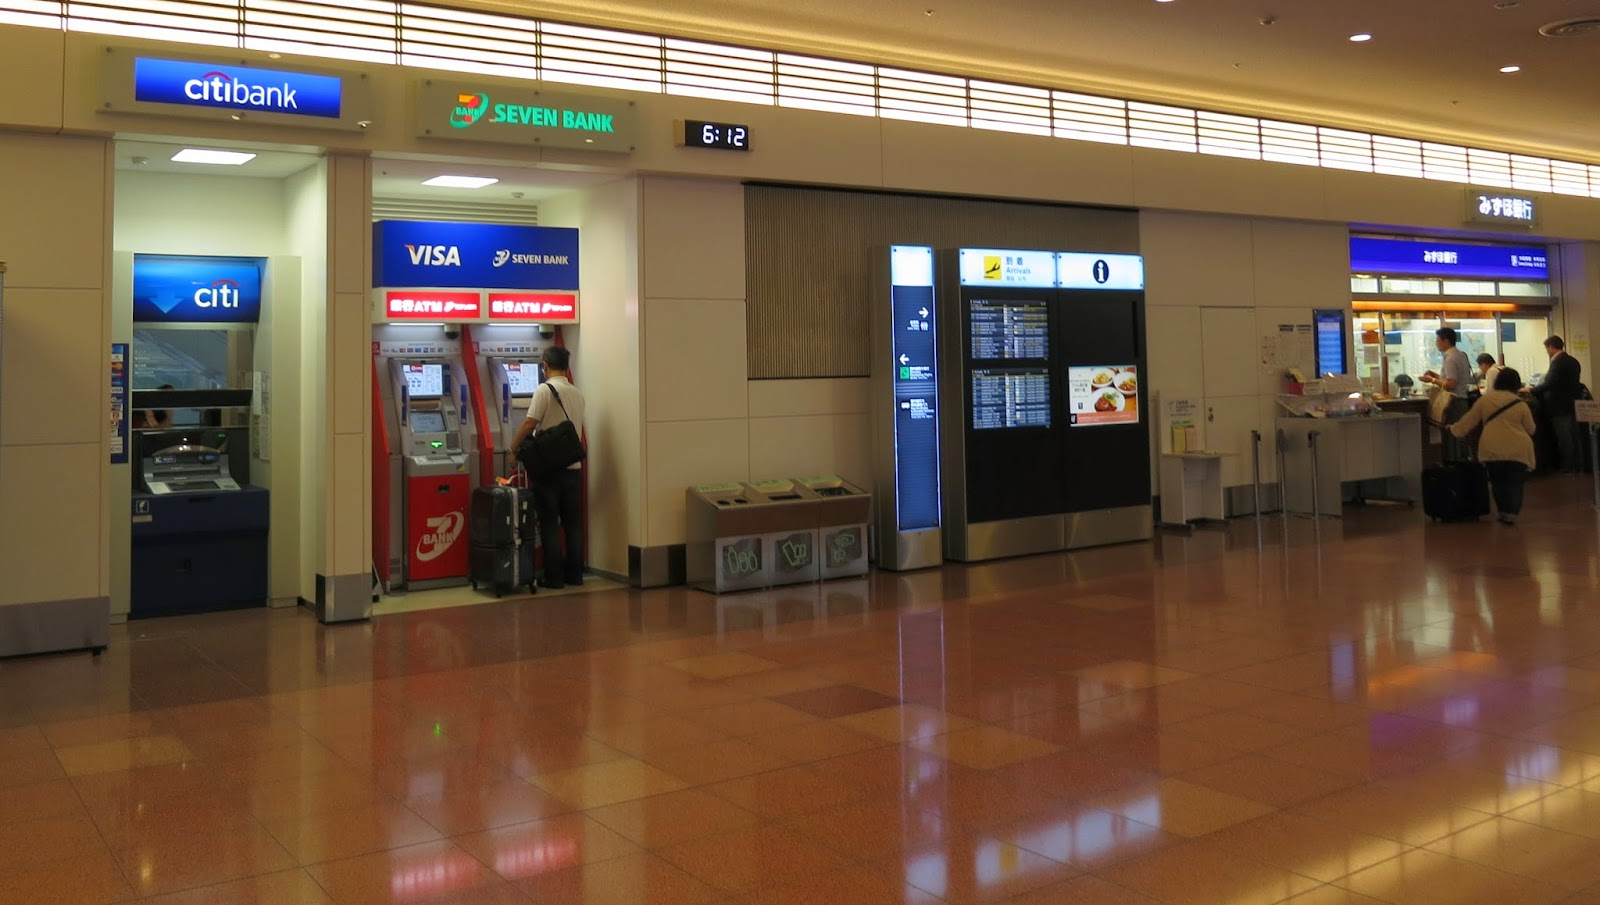 Atm Cash Machines Bank Counters Haneda Airport Tokyo Consult Tokyoconsult